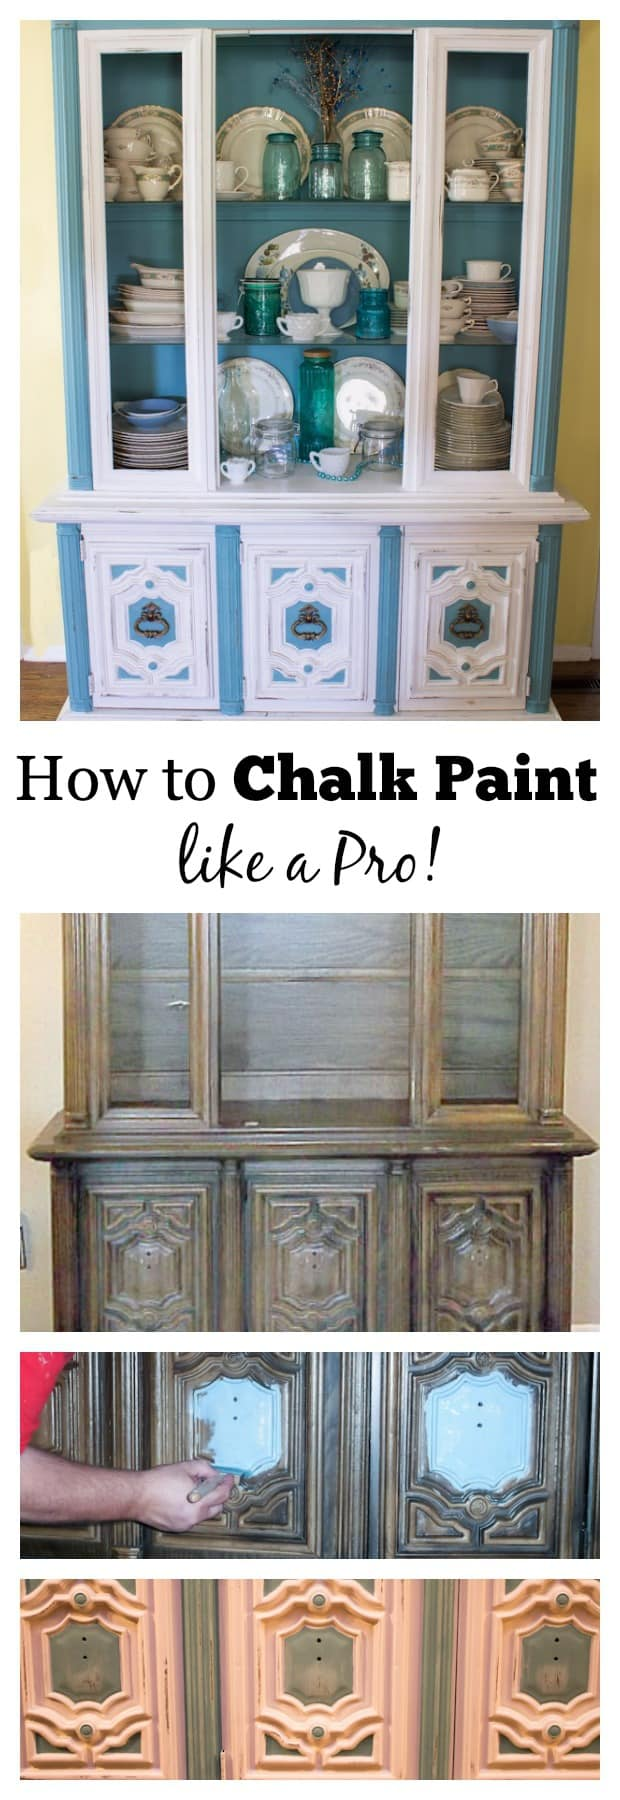 Turns out, chalk paint ideas extend far beyond the world of shabby chic décor and upcycled furniture. Annie Sloan Chalk Paint Tutorial 70 S China Hutch Makeover